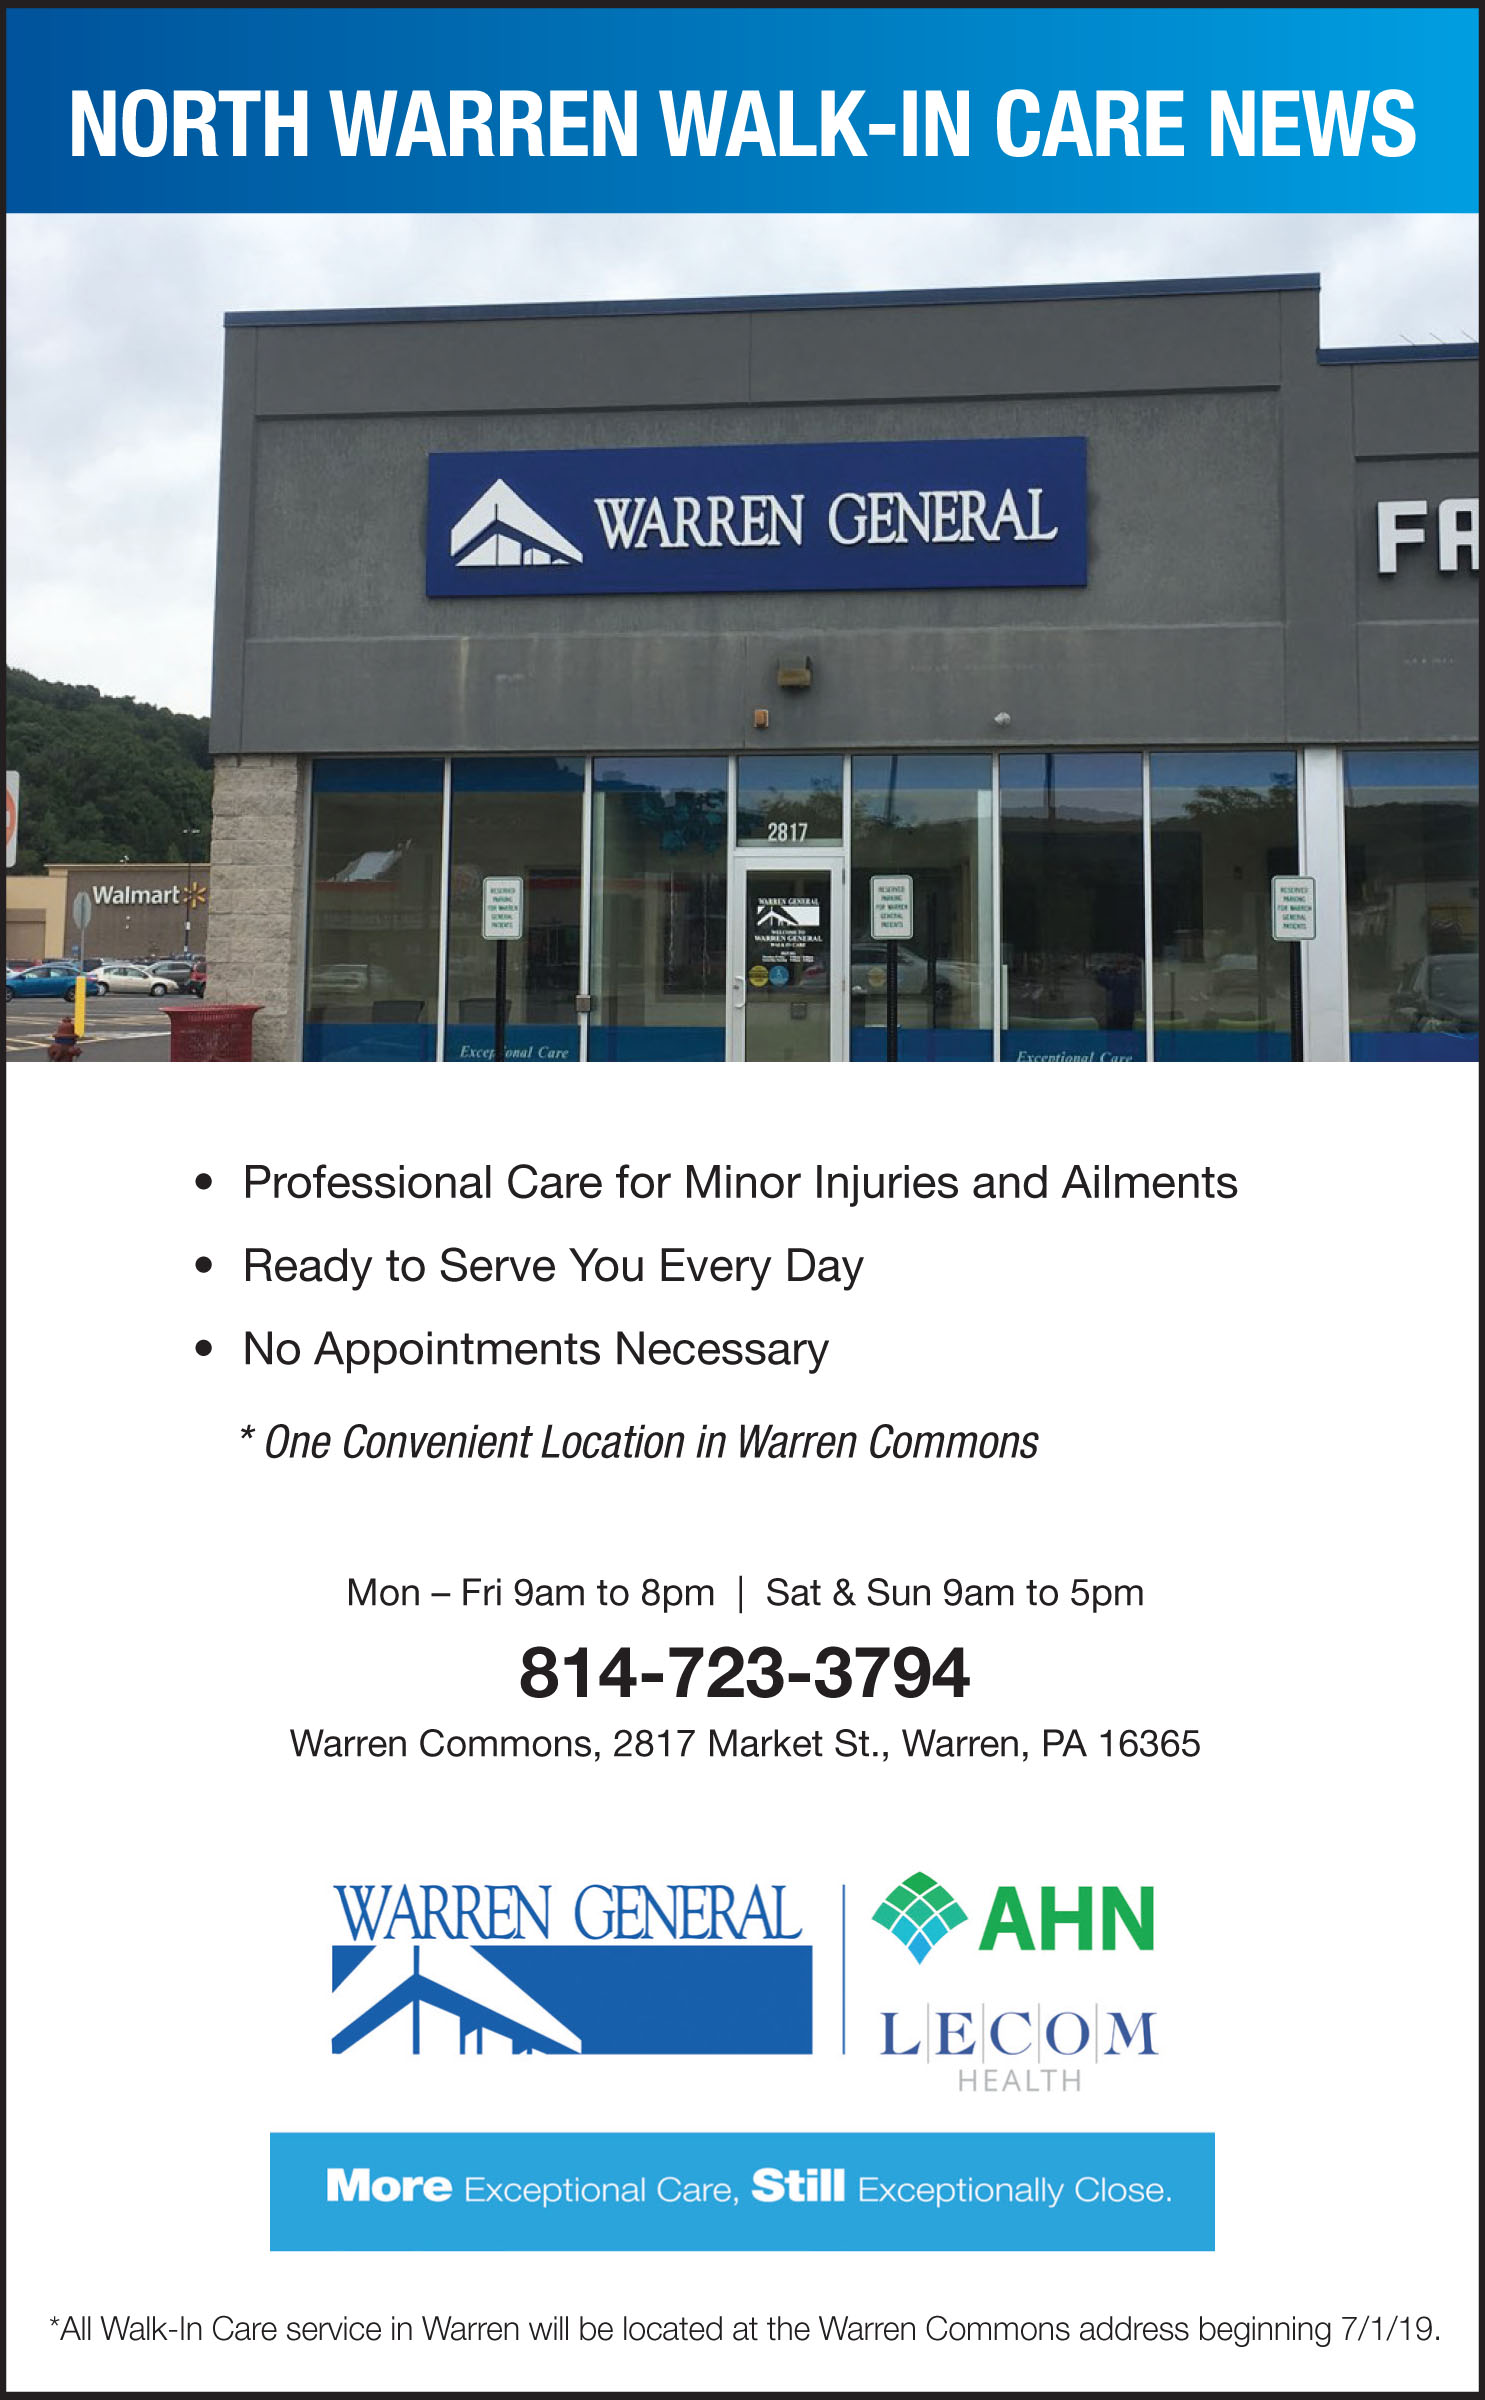 WGH North Warren Walk-In Care Service